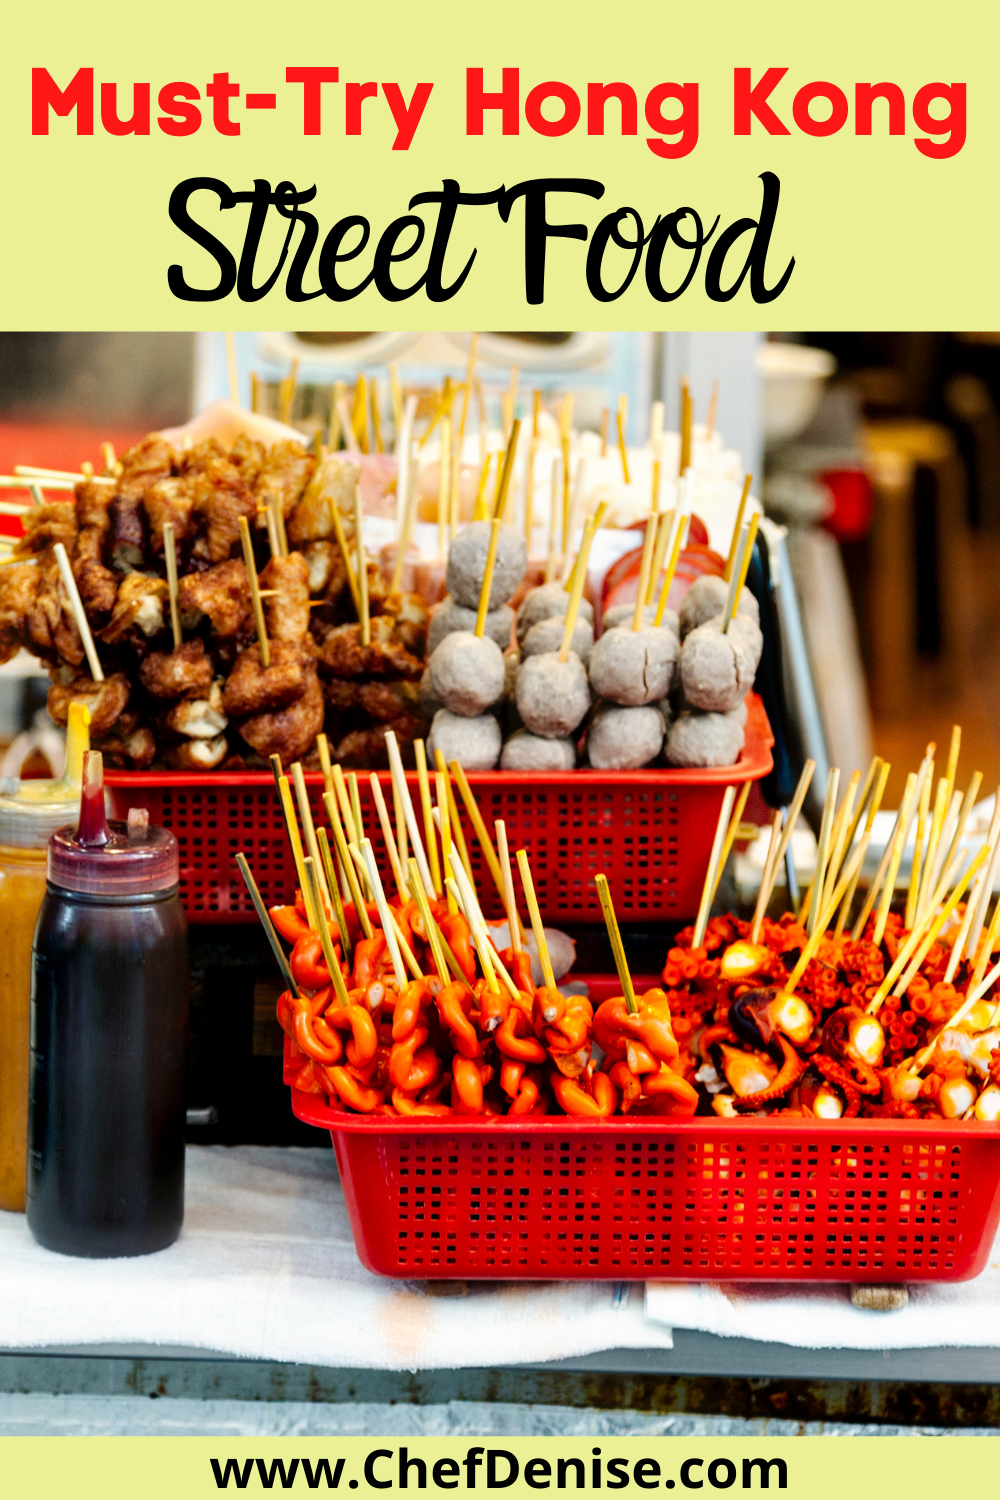 Pin for the best Hong Kong street food.